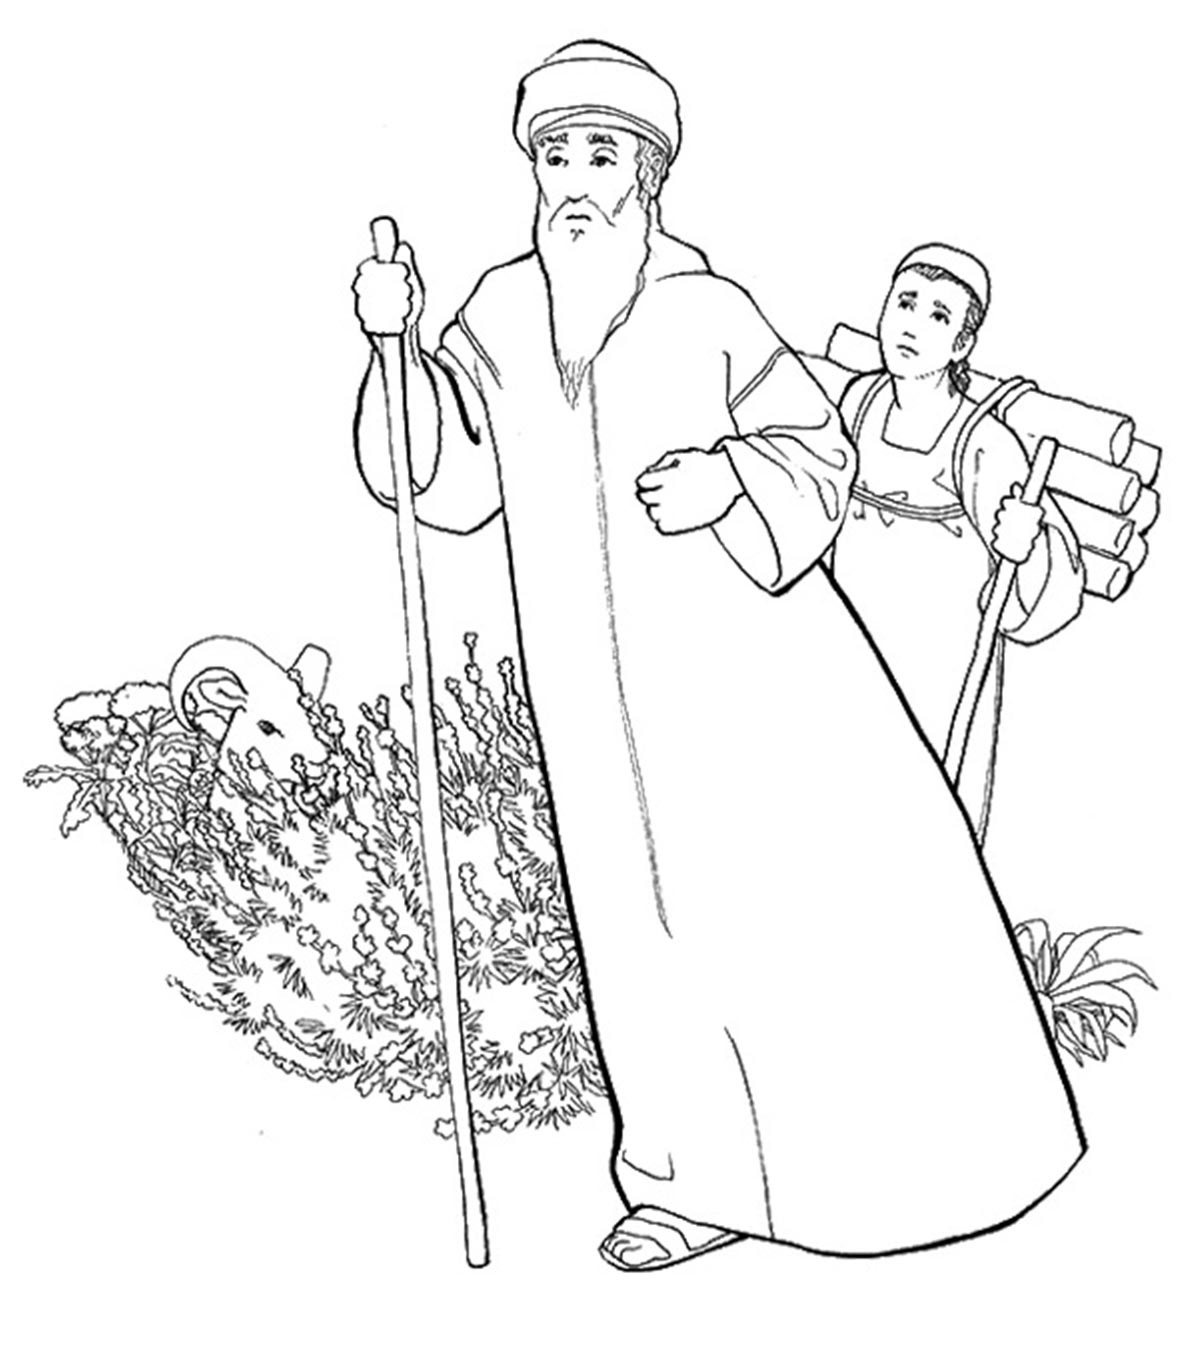 Lovable Abraham And Sarah Coloring Pages 24 | Abraham and sarah ... | 1350x1200